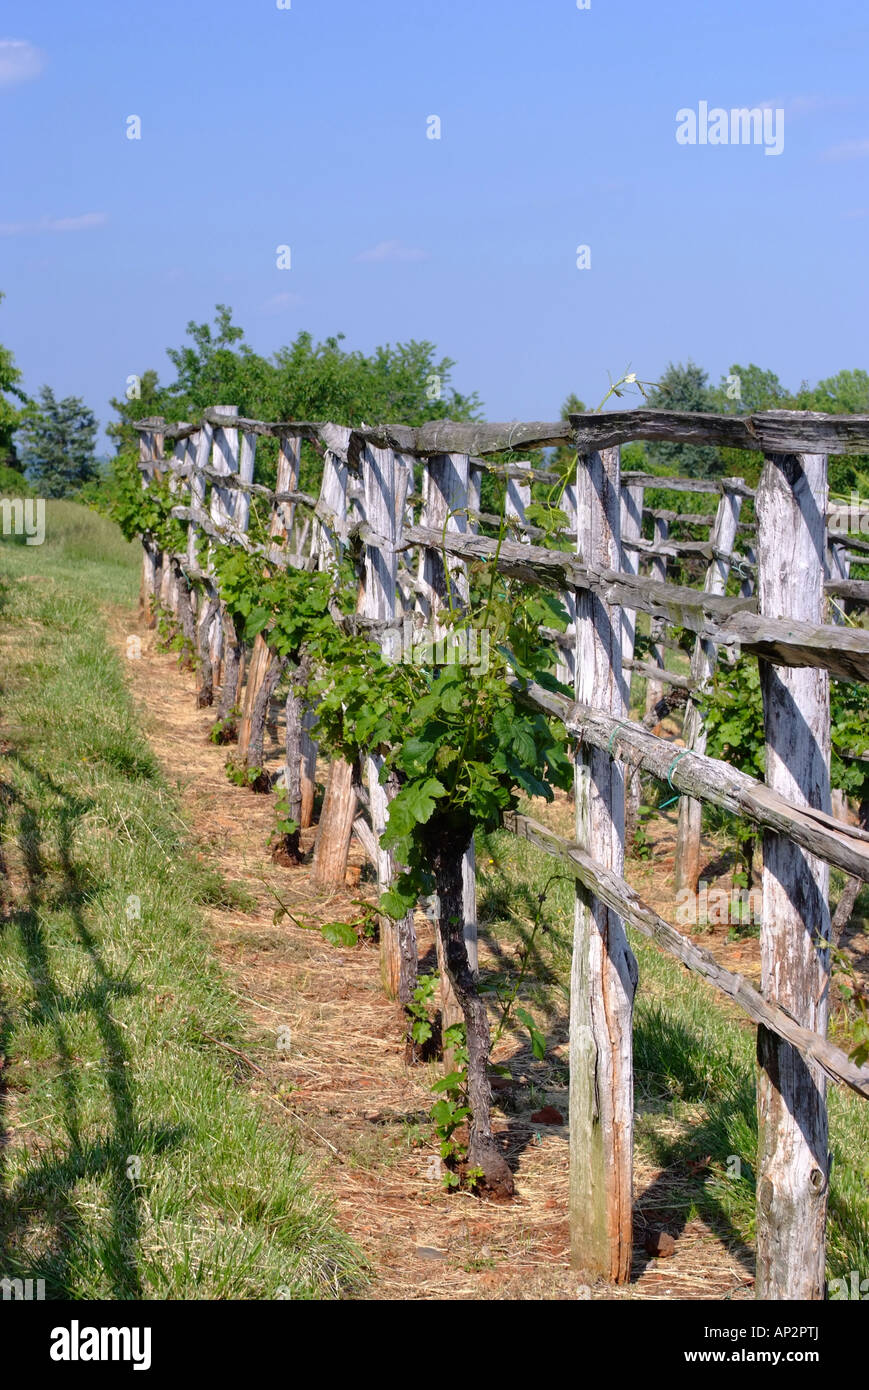 Grape Vines Growing On Trellis In Thomas Jefferson Vegetable Garden At  Monticello Virginia United States America